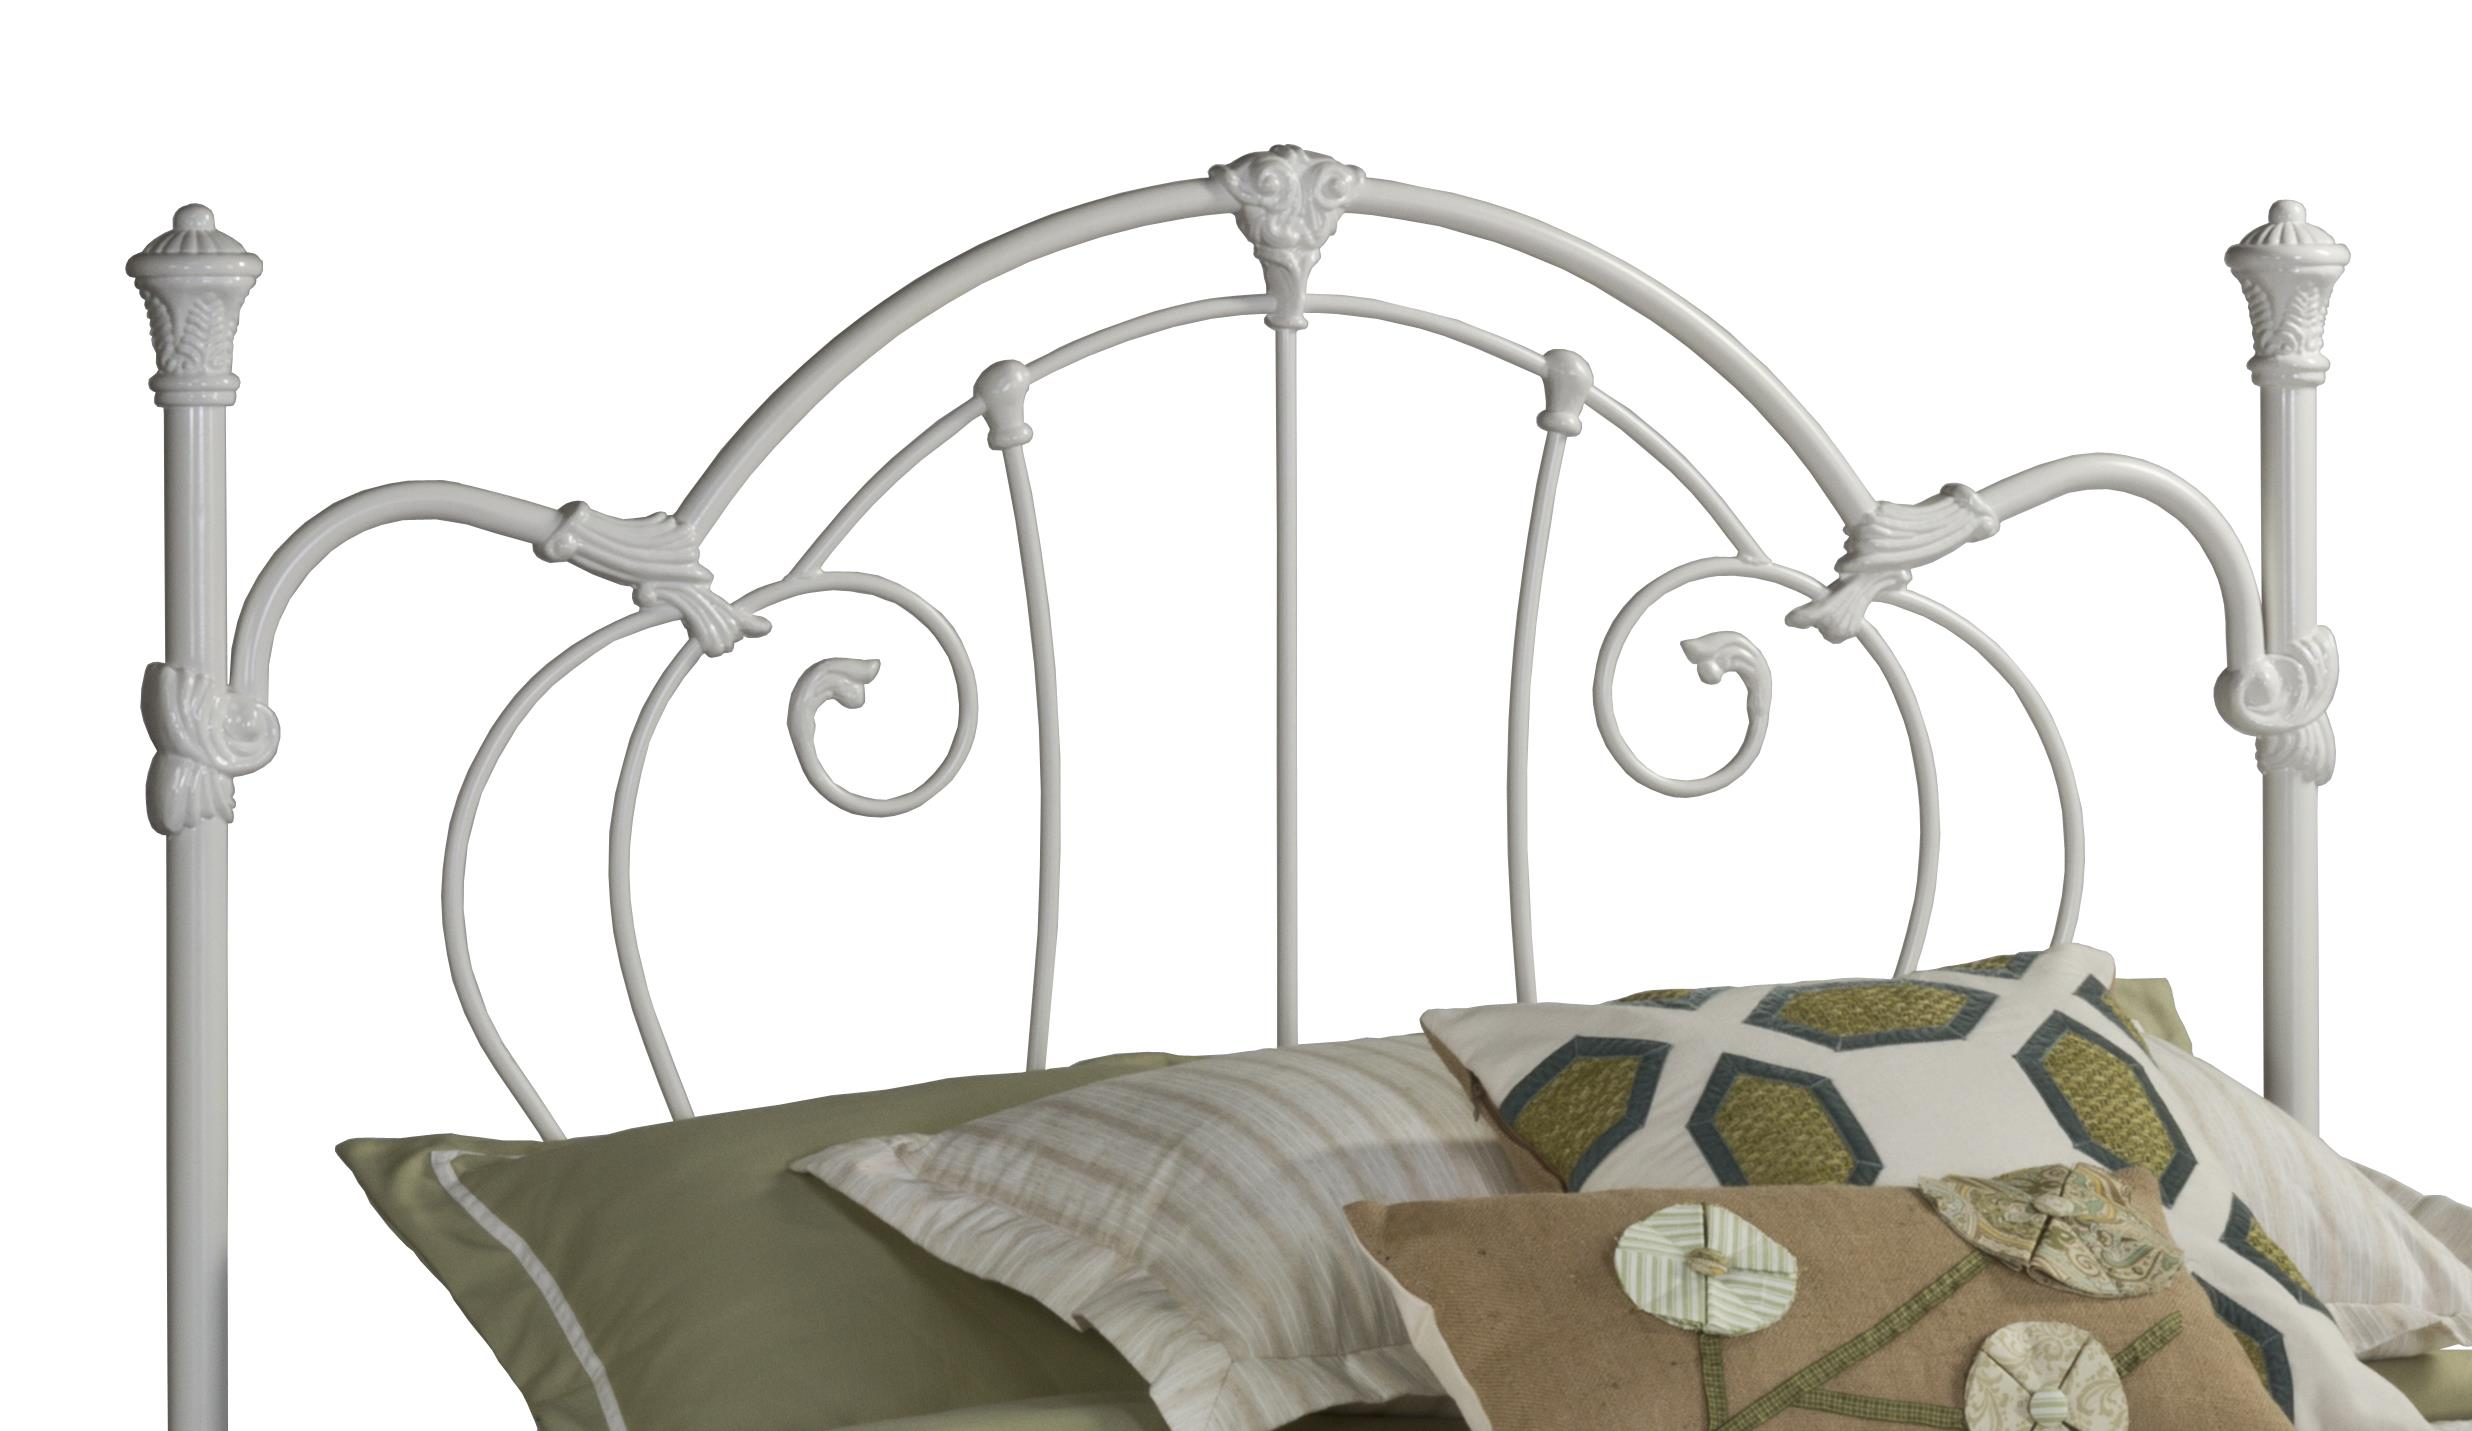 Hillsdale Metal Beds Headboard and Rails - Full/Queen - Item Number: 381HFQR